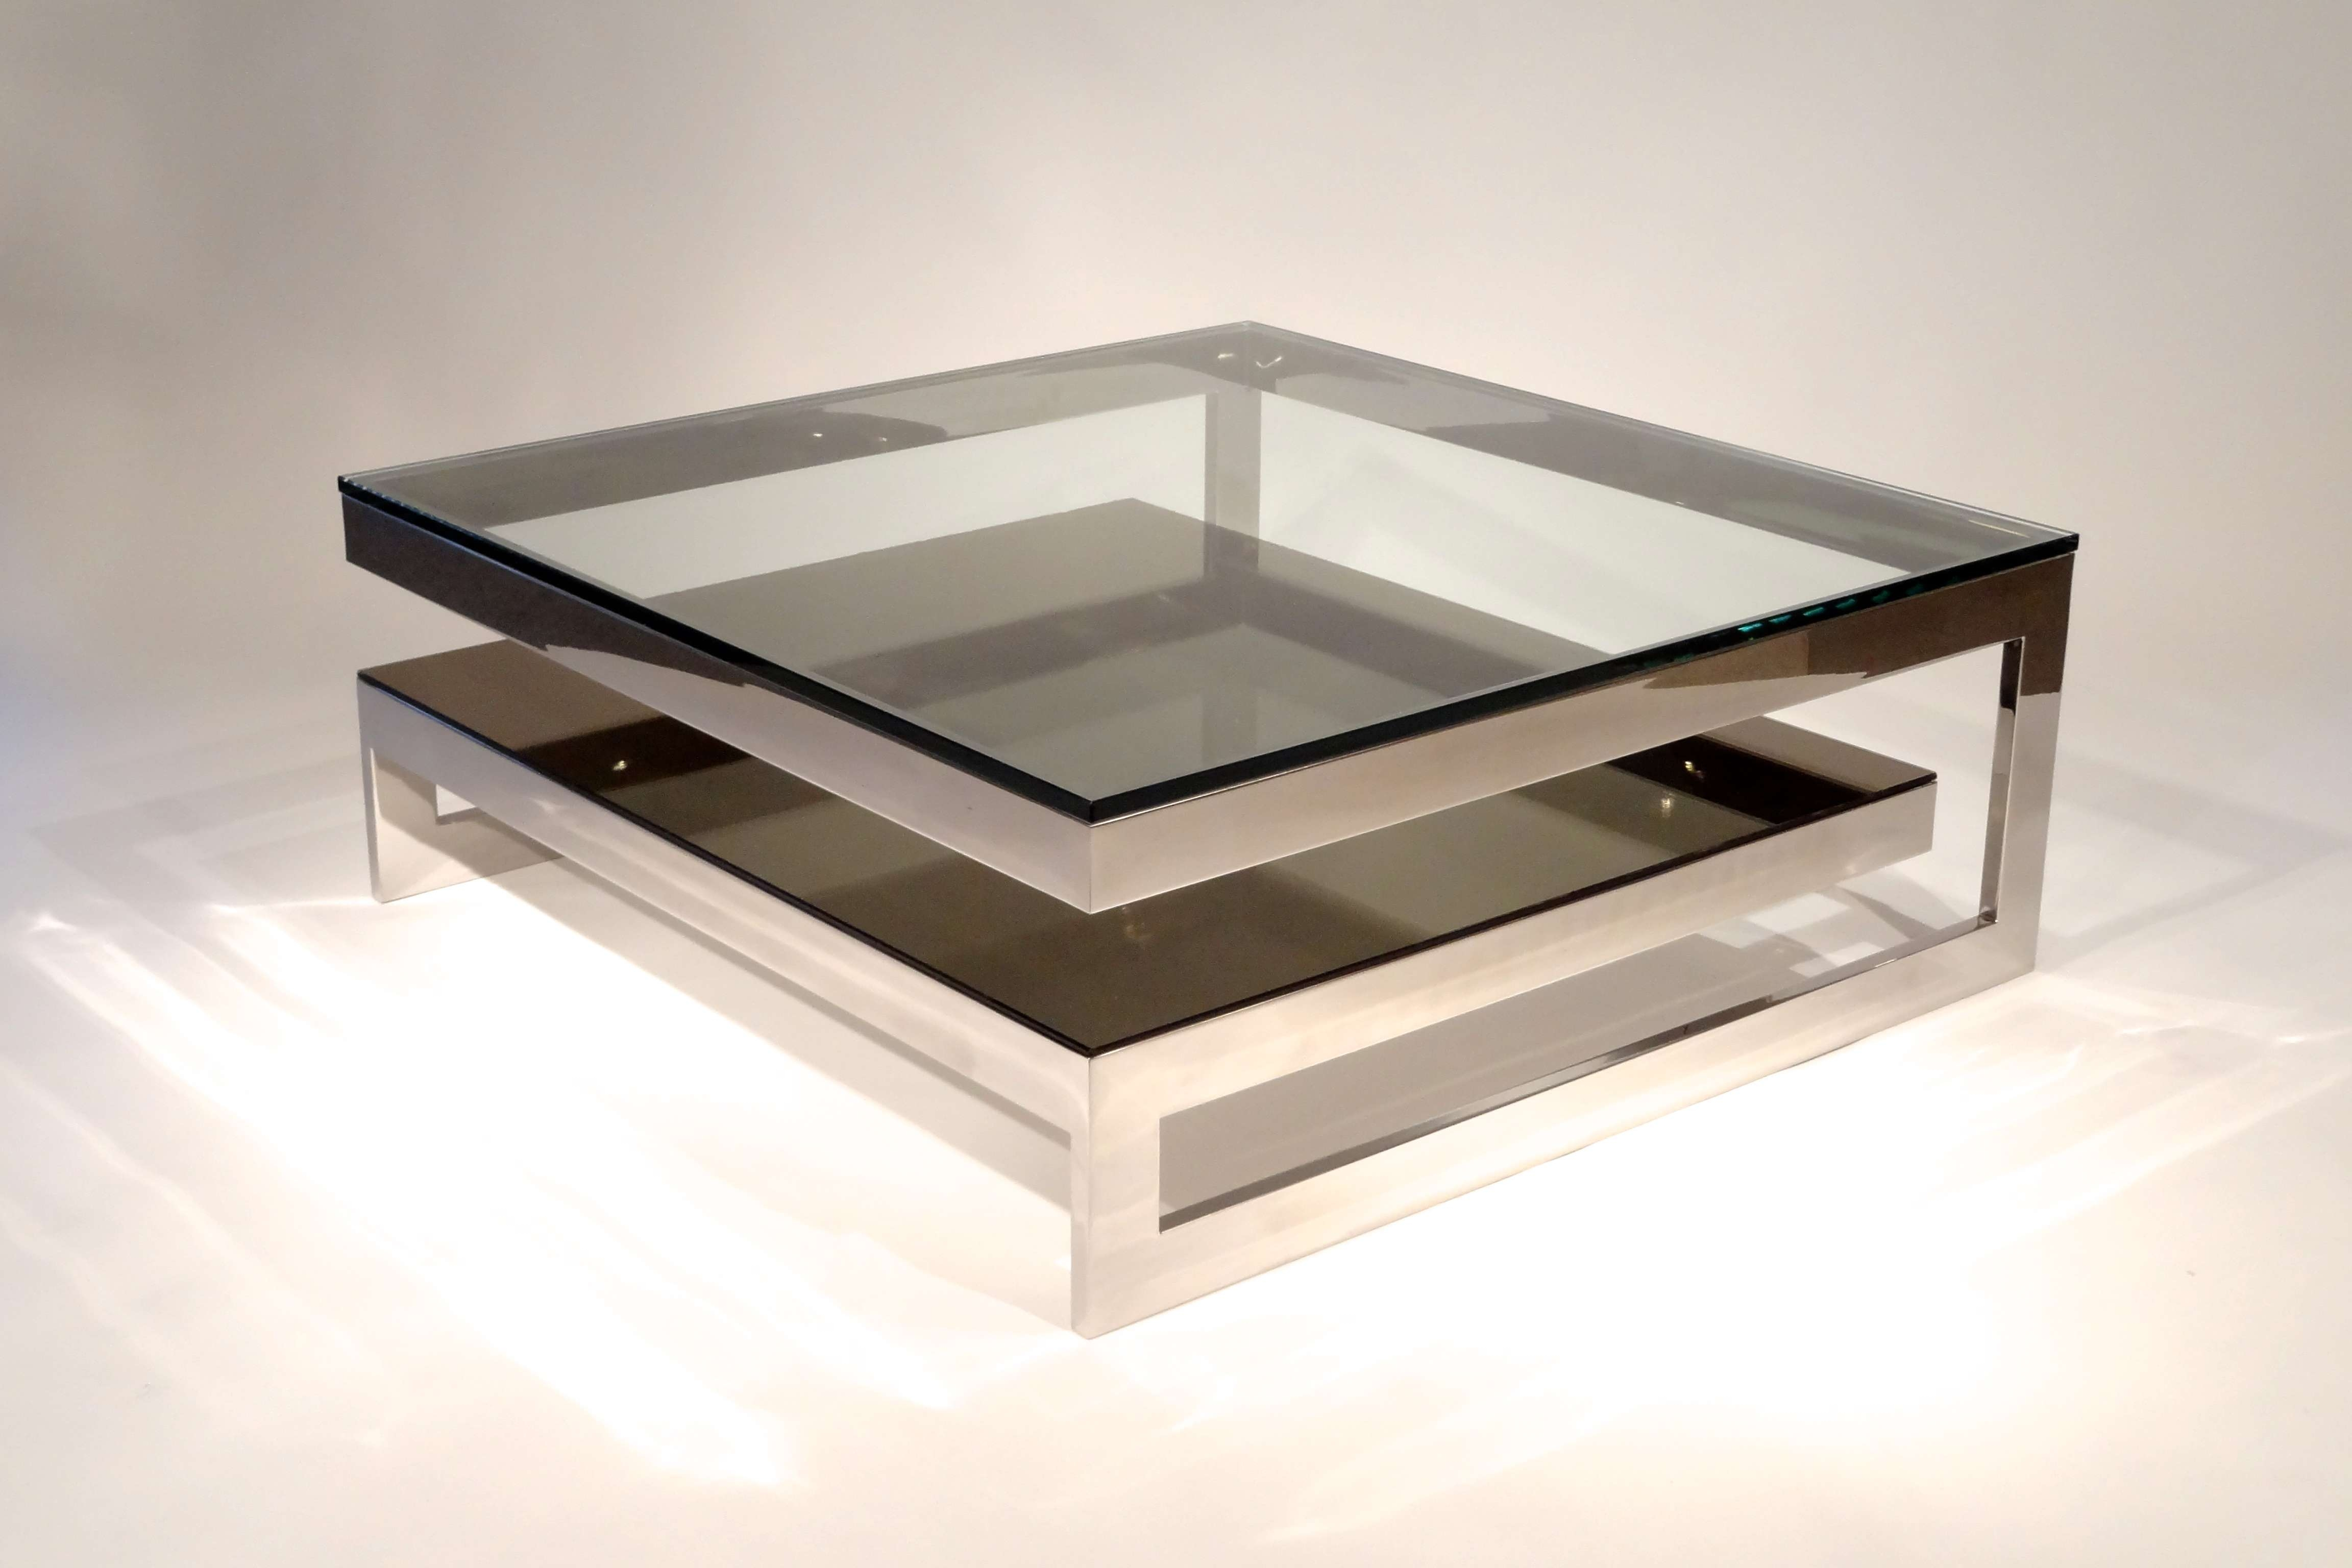 Trendy Modern Coffee Table Throughout Interior : Rustic Wood Coffee Table Sfr Cen Tres Amigos Decobizz (View 16 of 20)